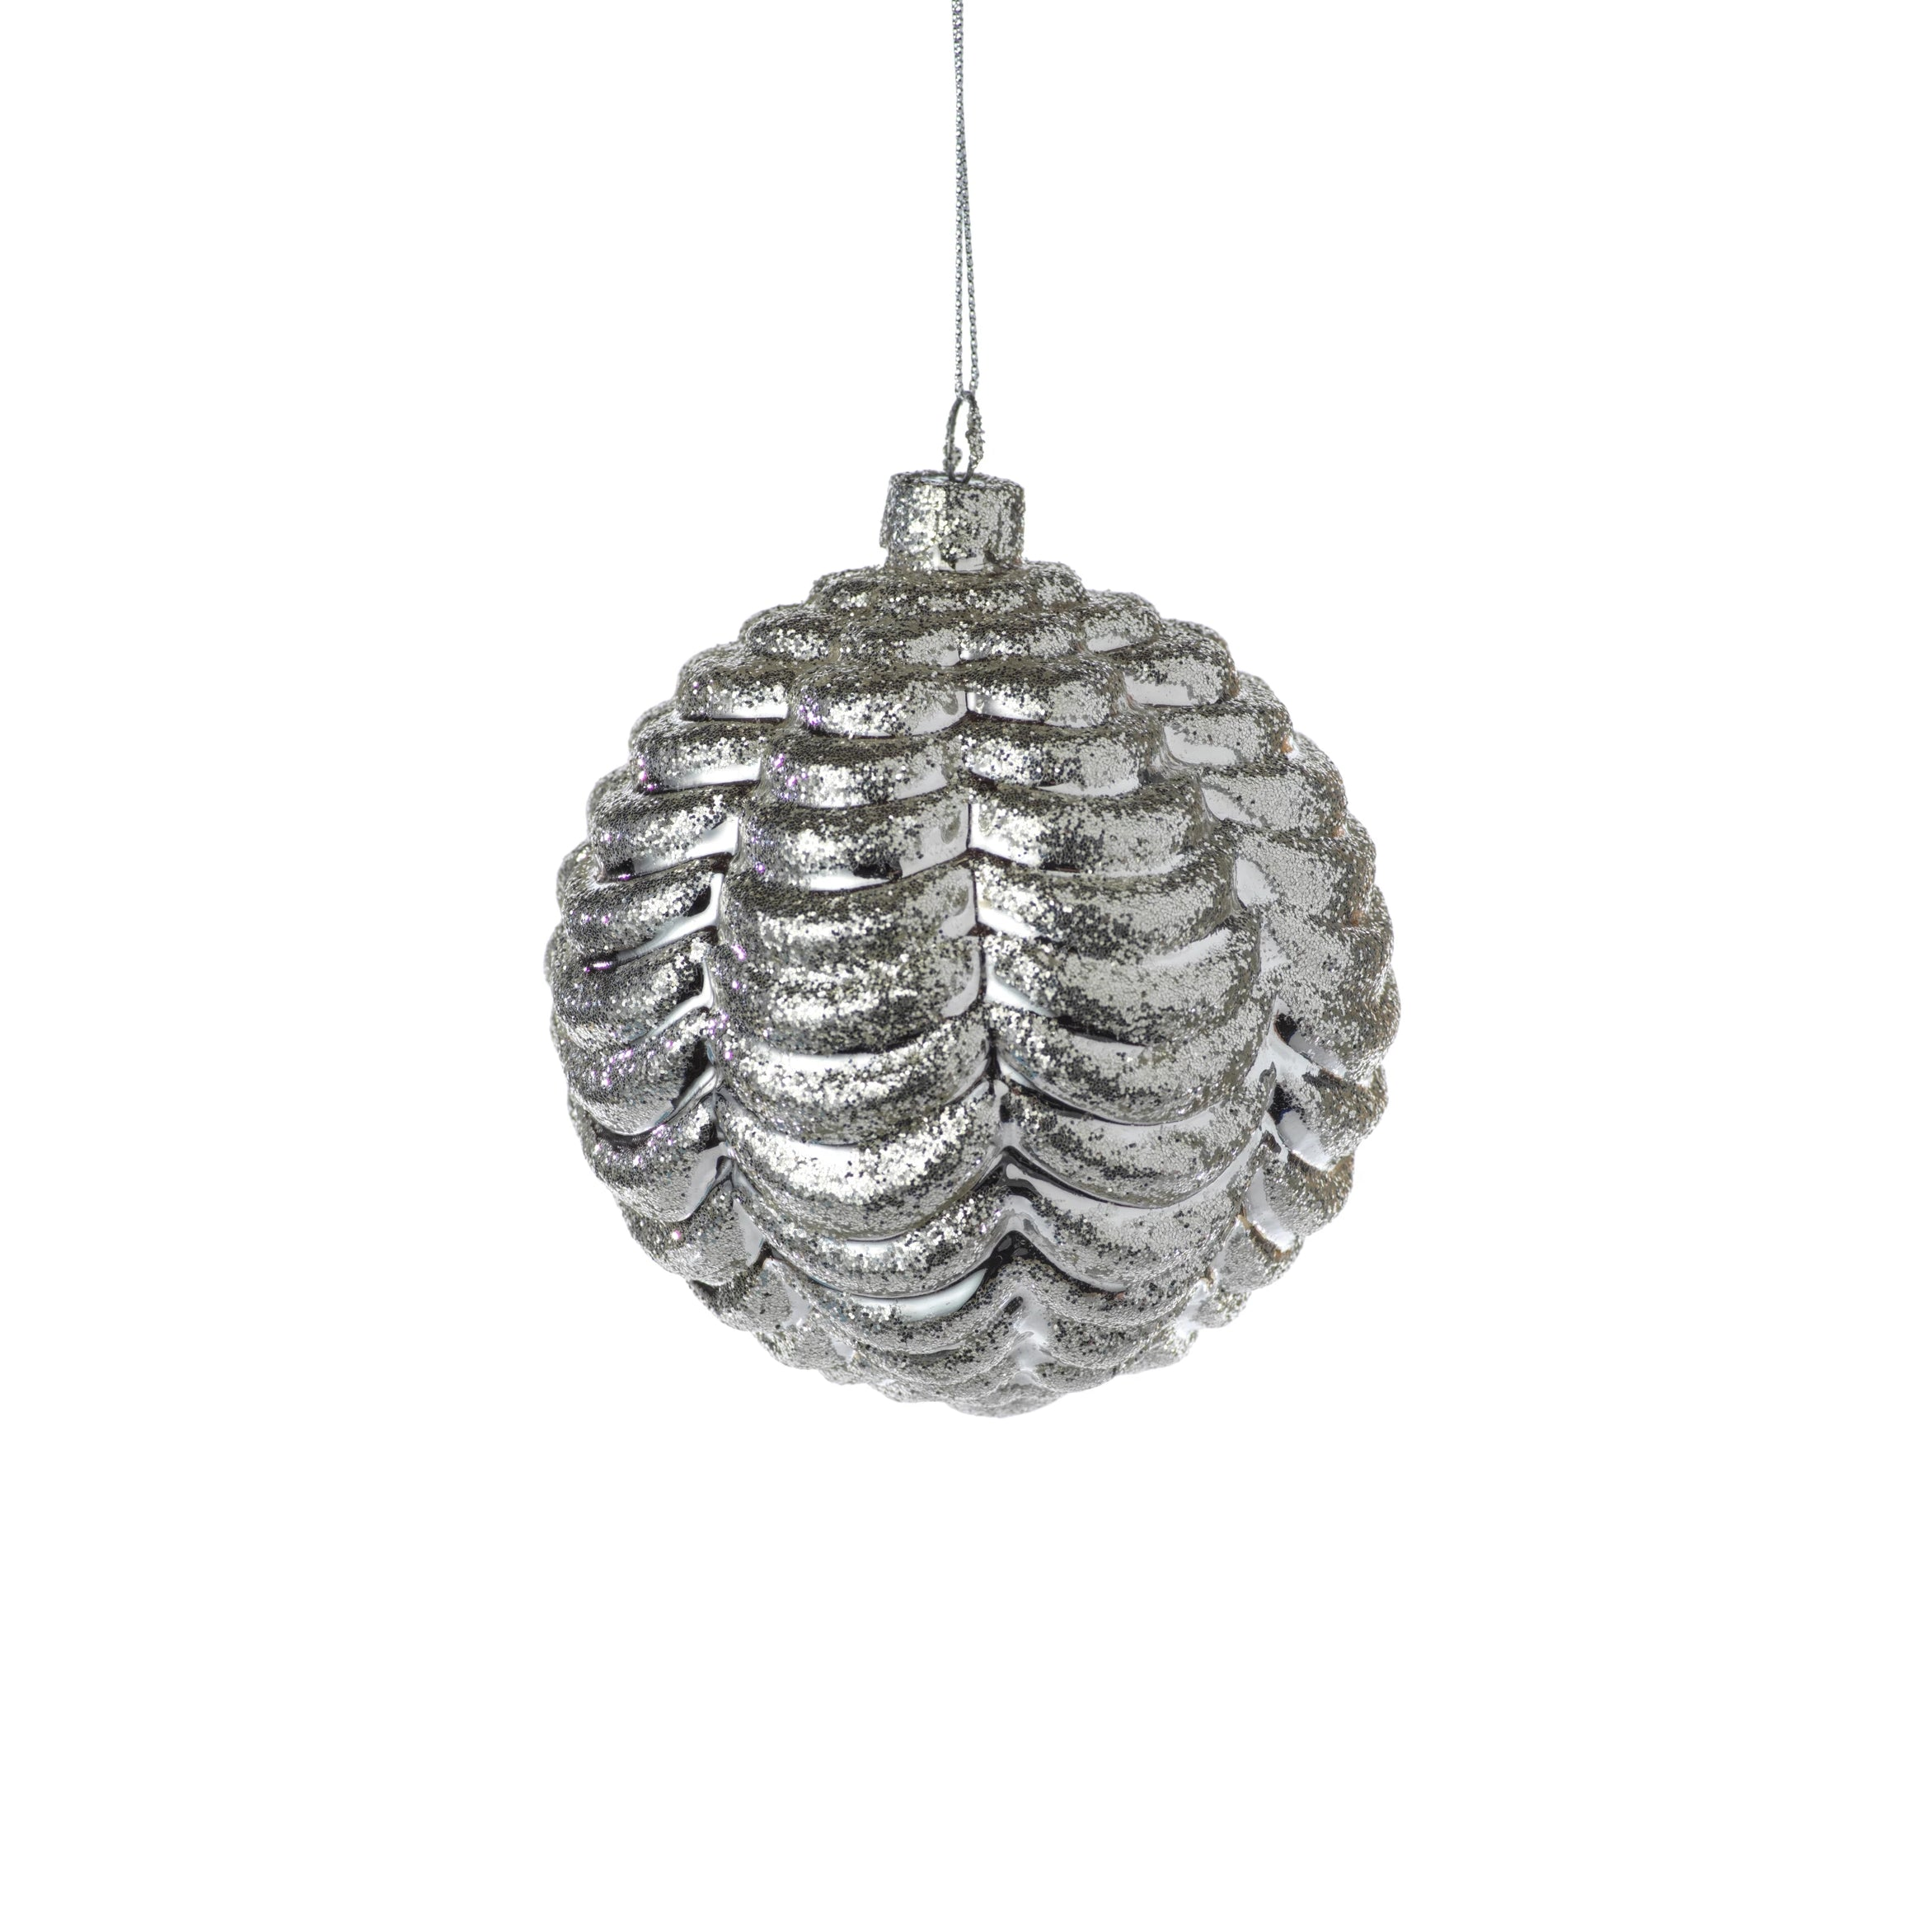 Silver Ripple Ball Ornament - CARLYLE AVENUE